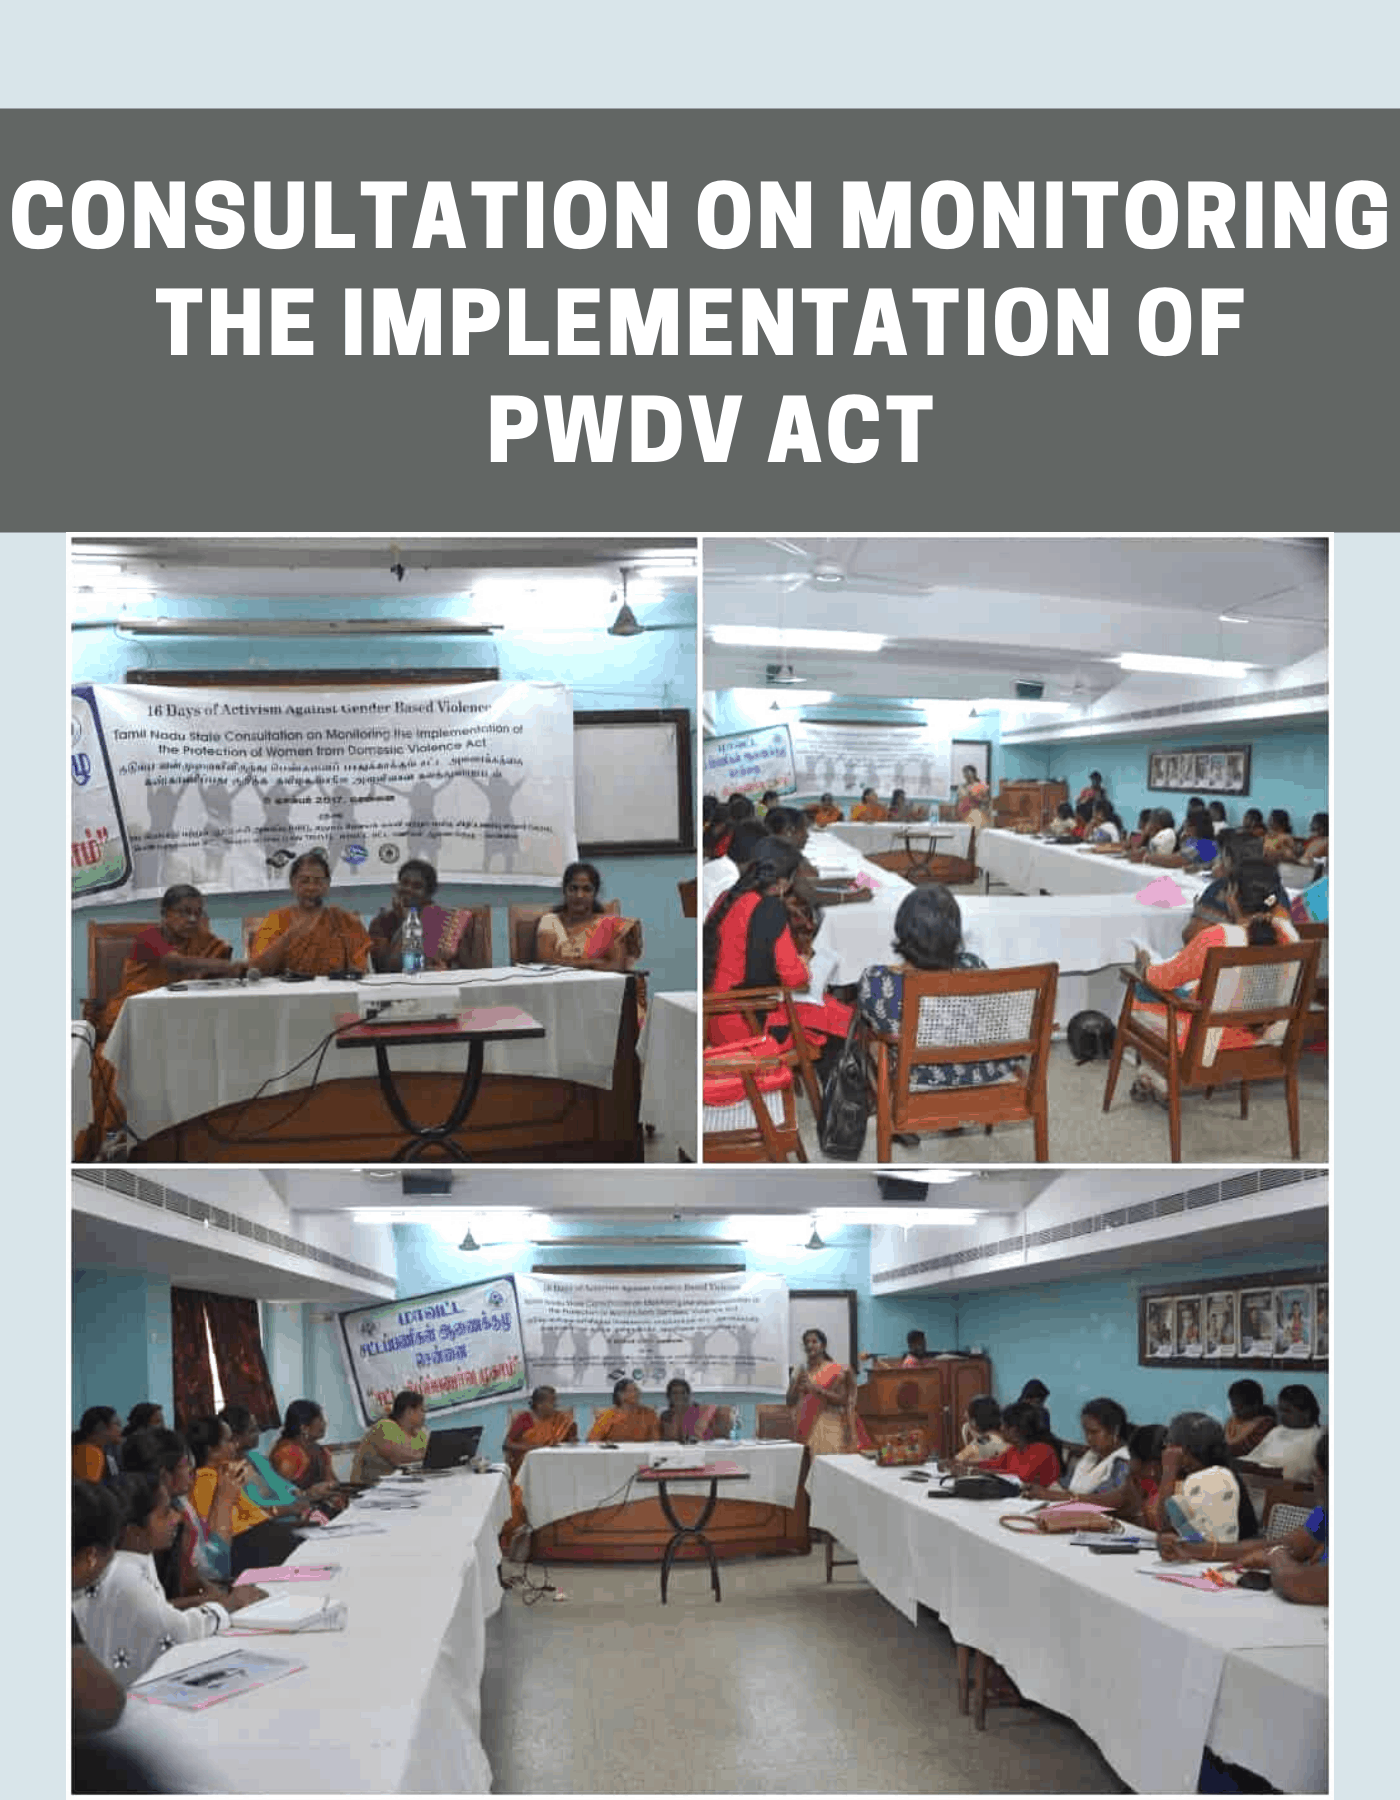 Consultation on Monitoring the Implementation of PWDV Act